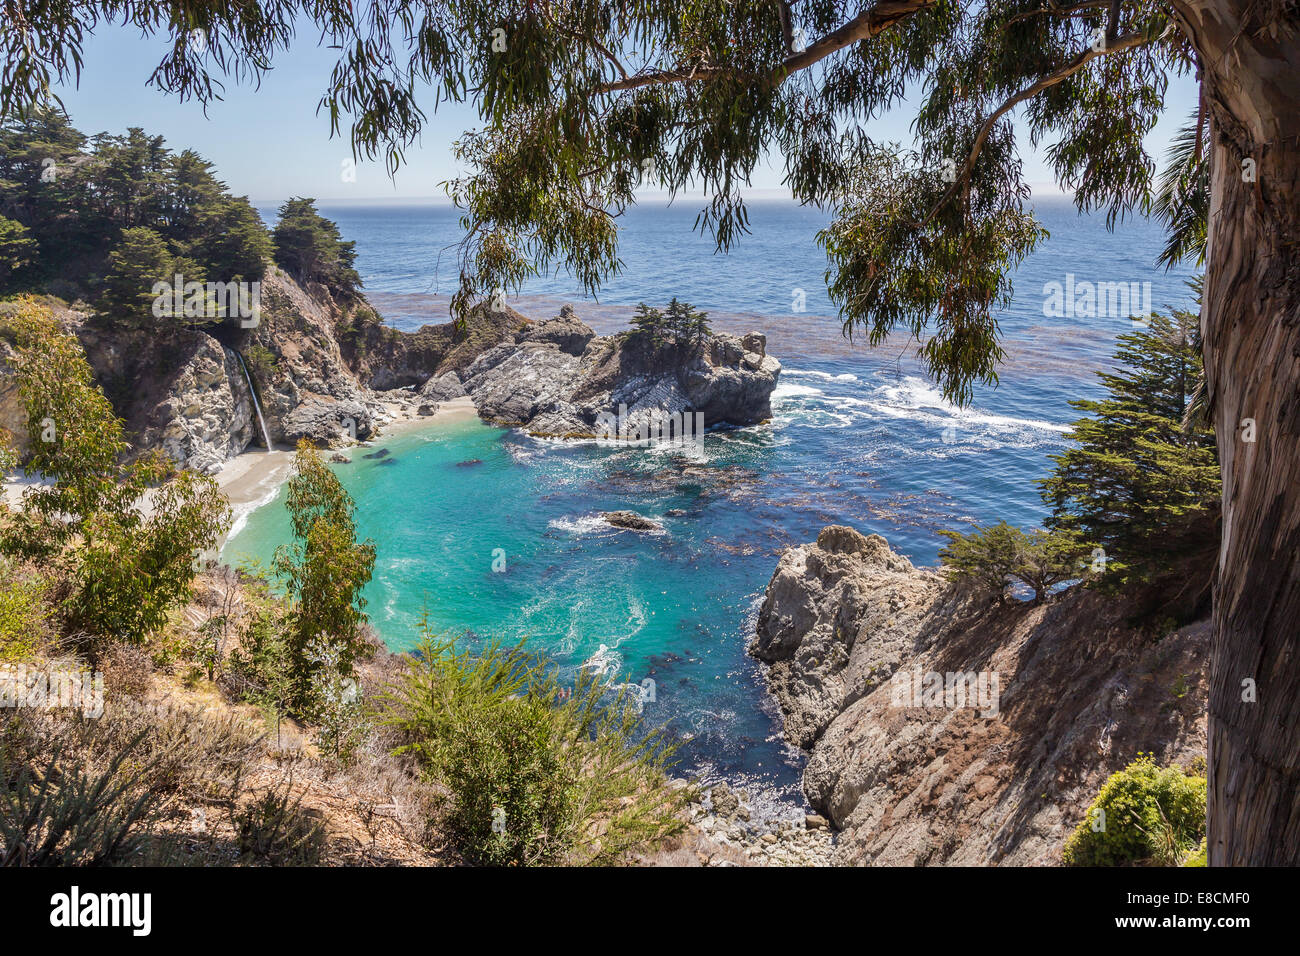 McWay Falls on the westcoast in california - Stock Image